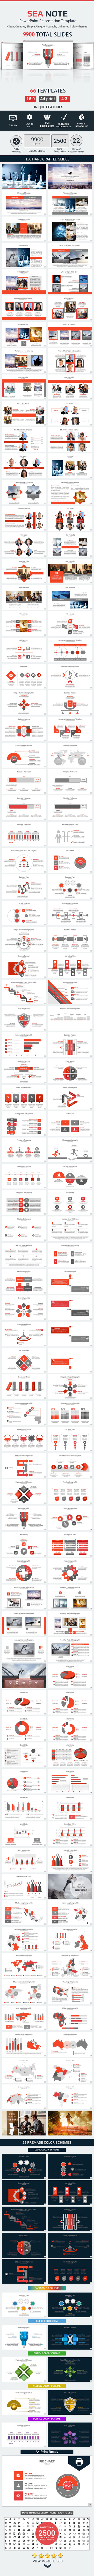 Sea note powerpoint presentation template by rainstudio graphicriver sea note powerpoint presentation template abstract powerpoint templates toneelgroepblik Image collections